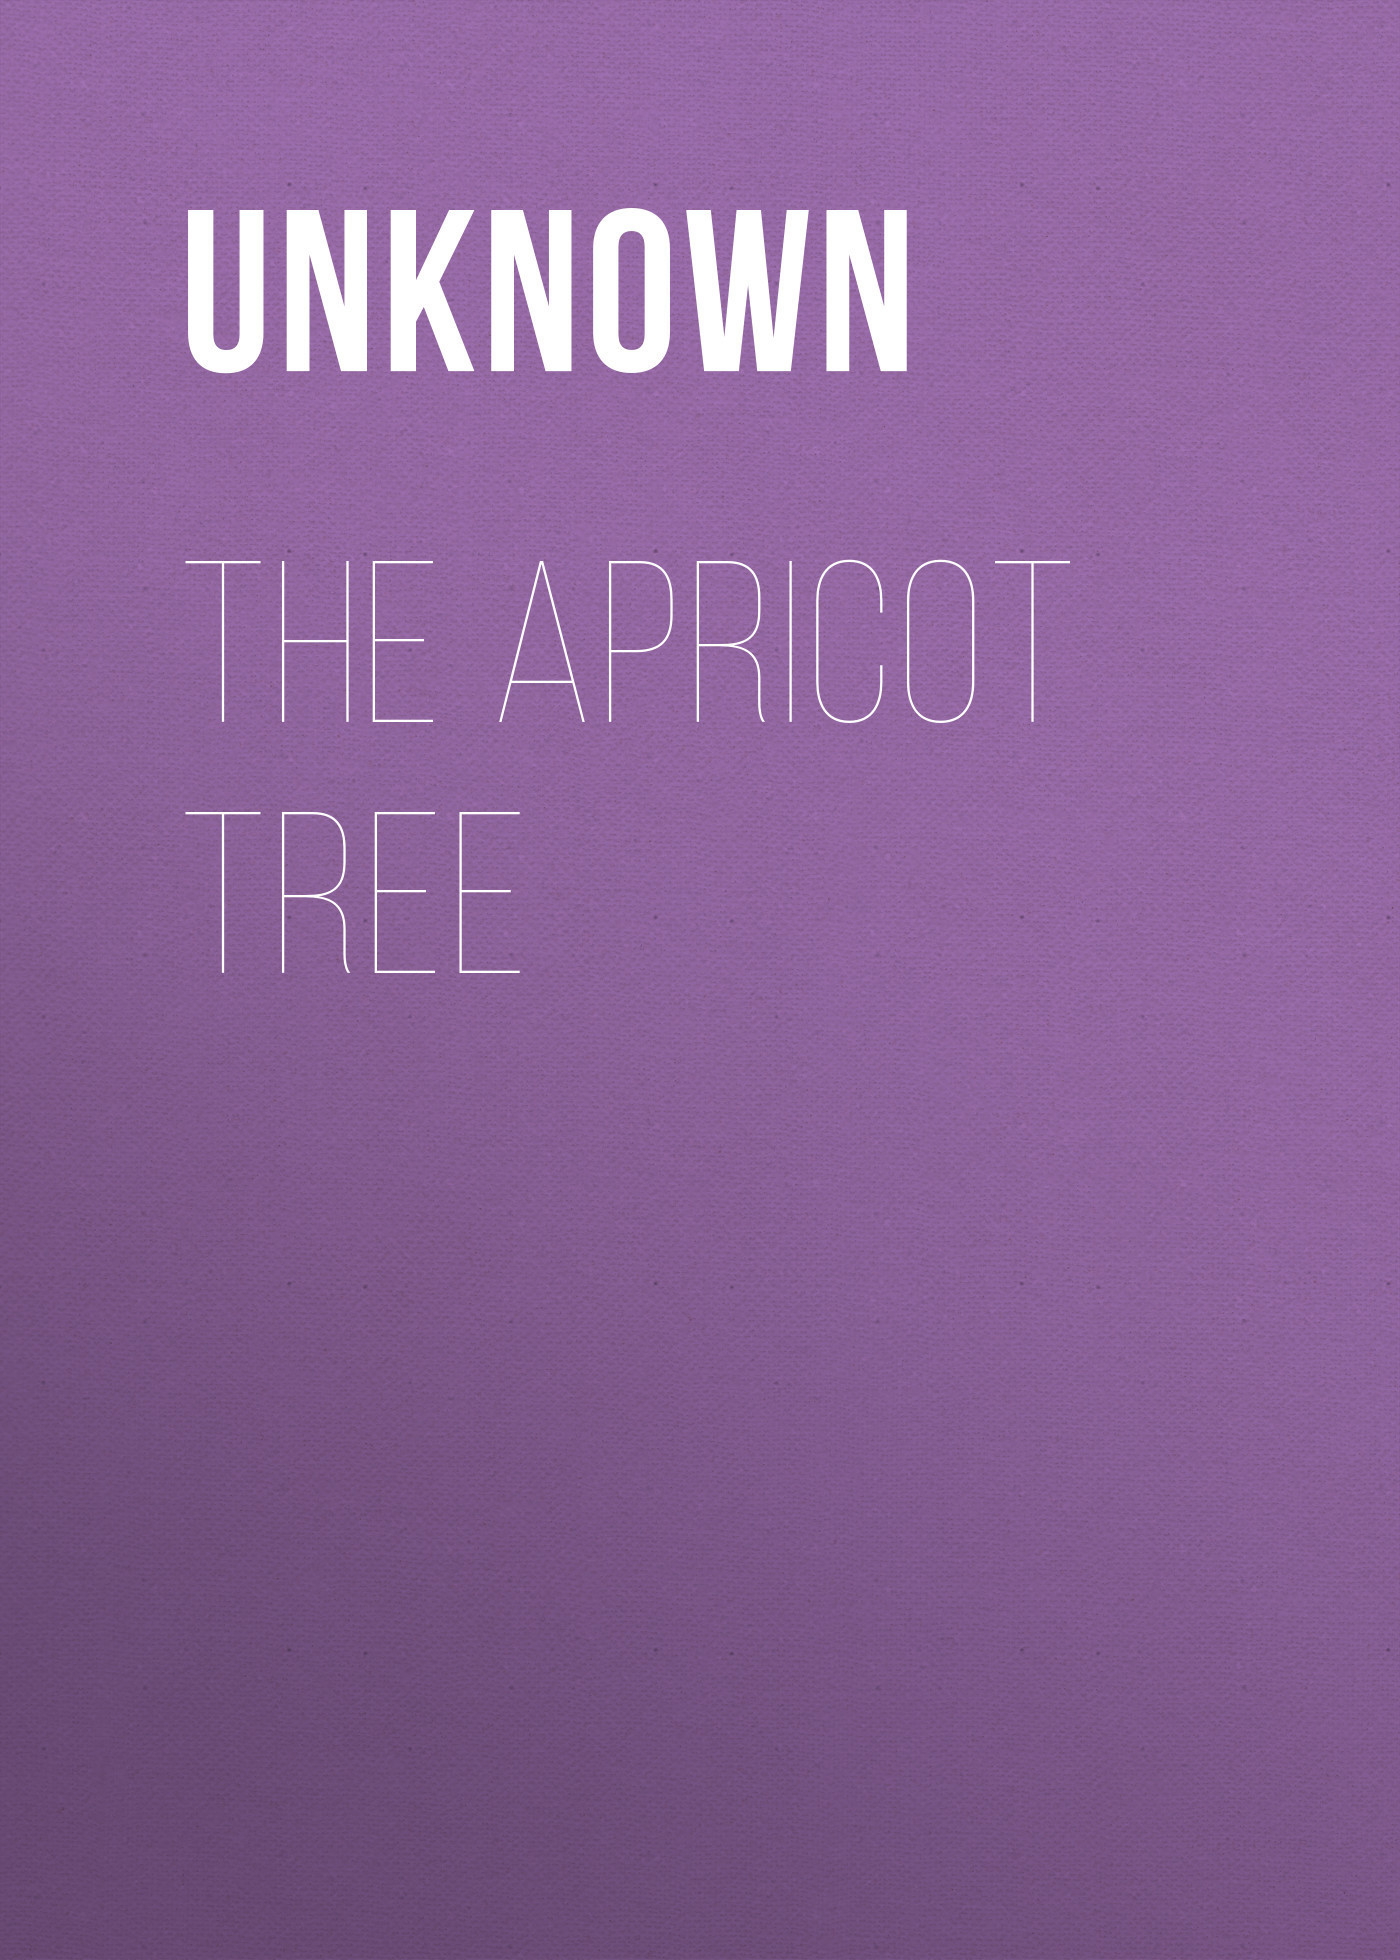 Unknown The Apricot Tree